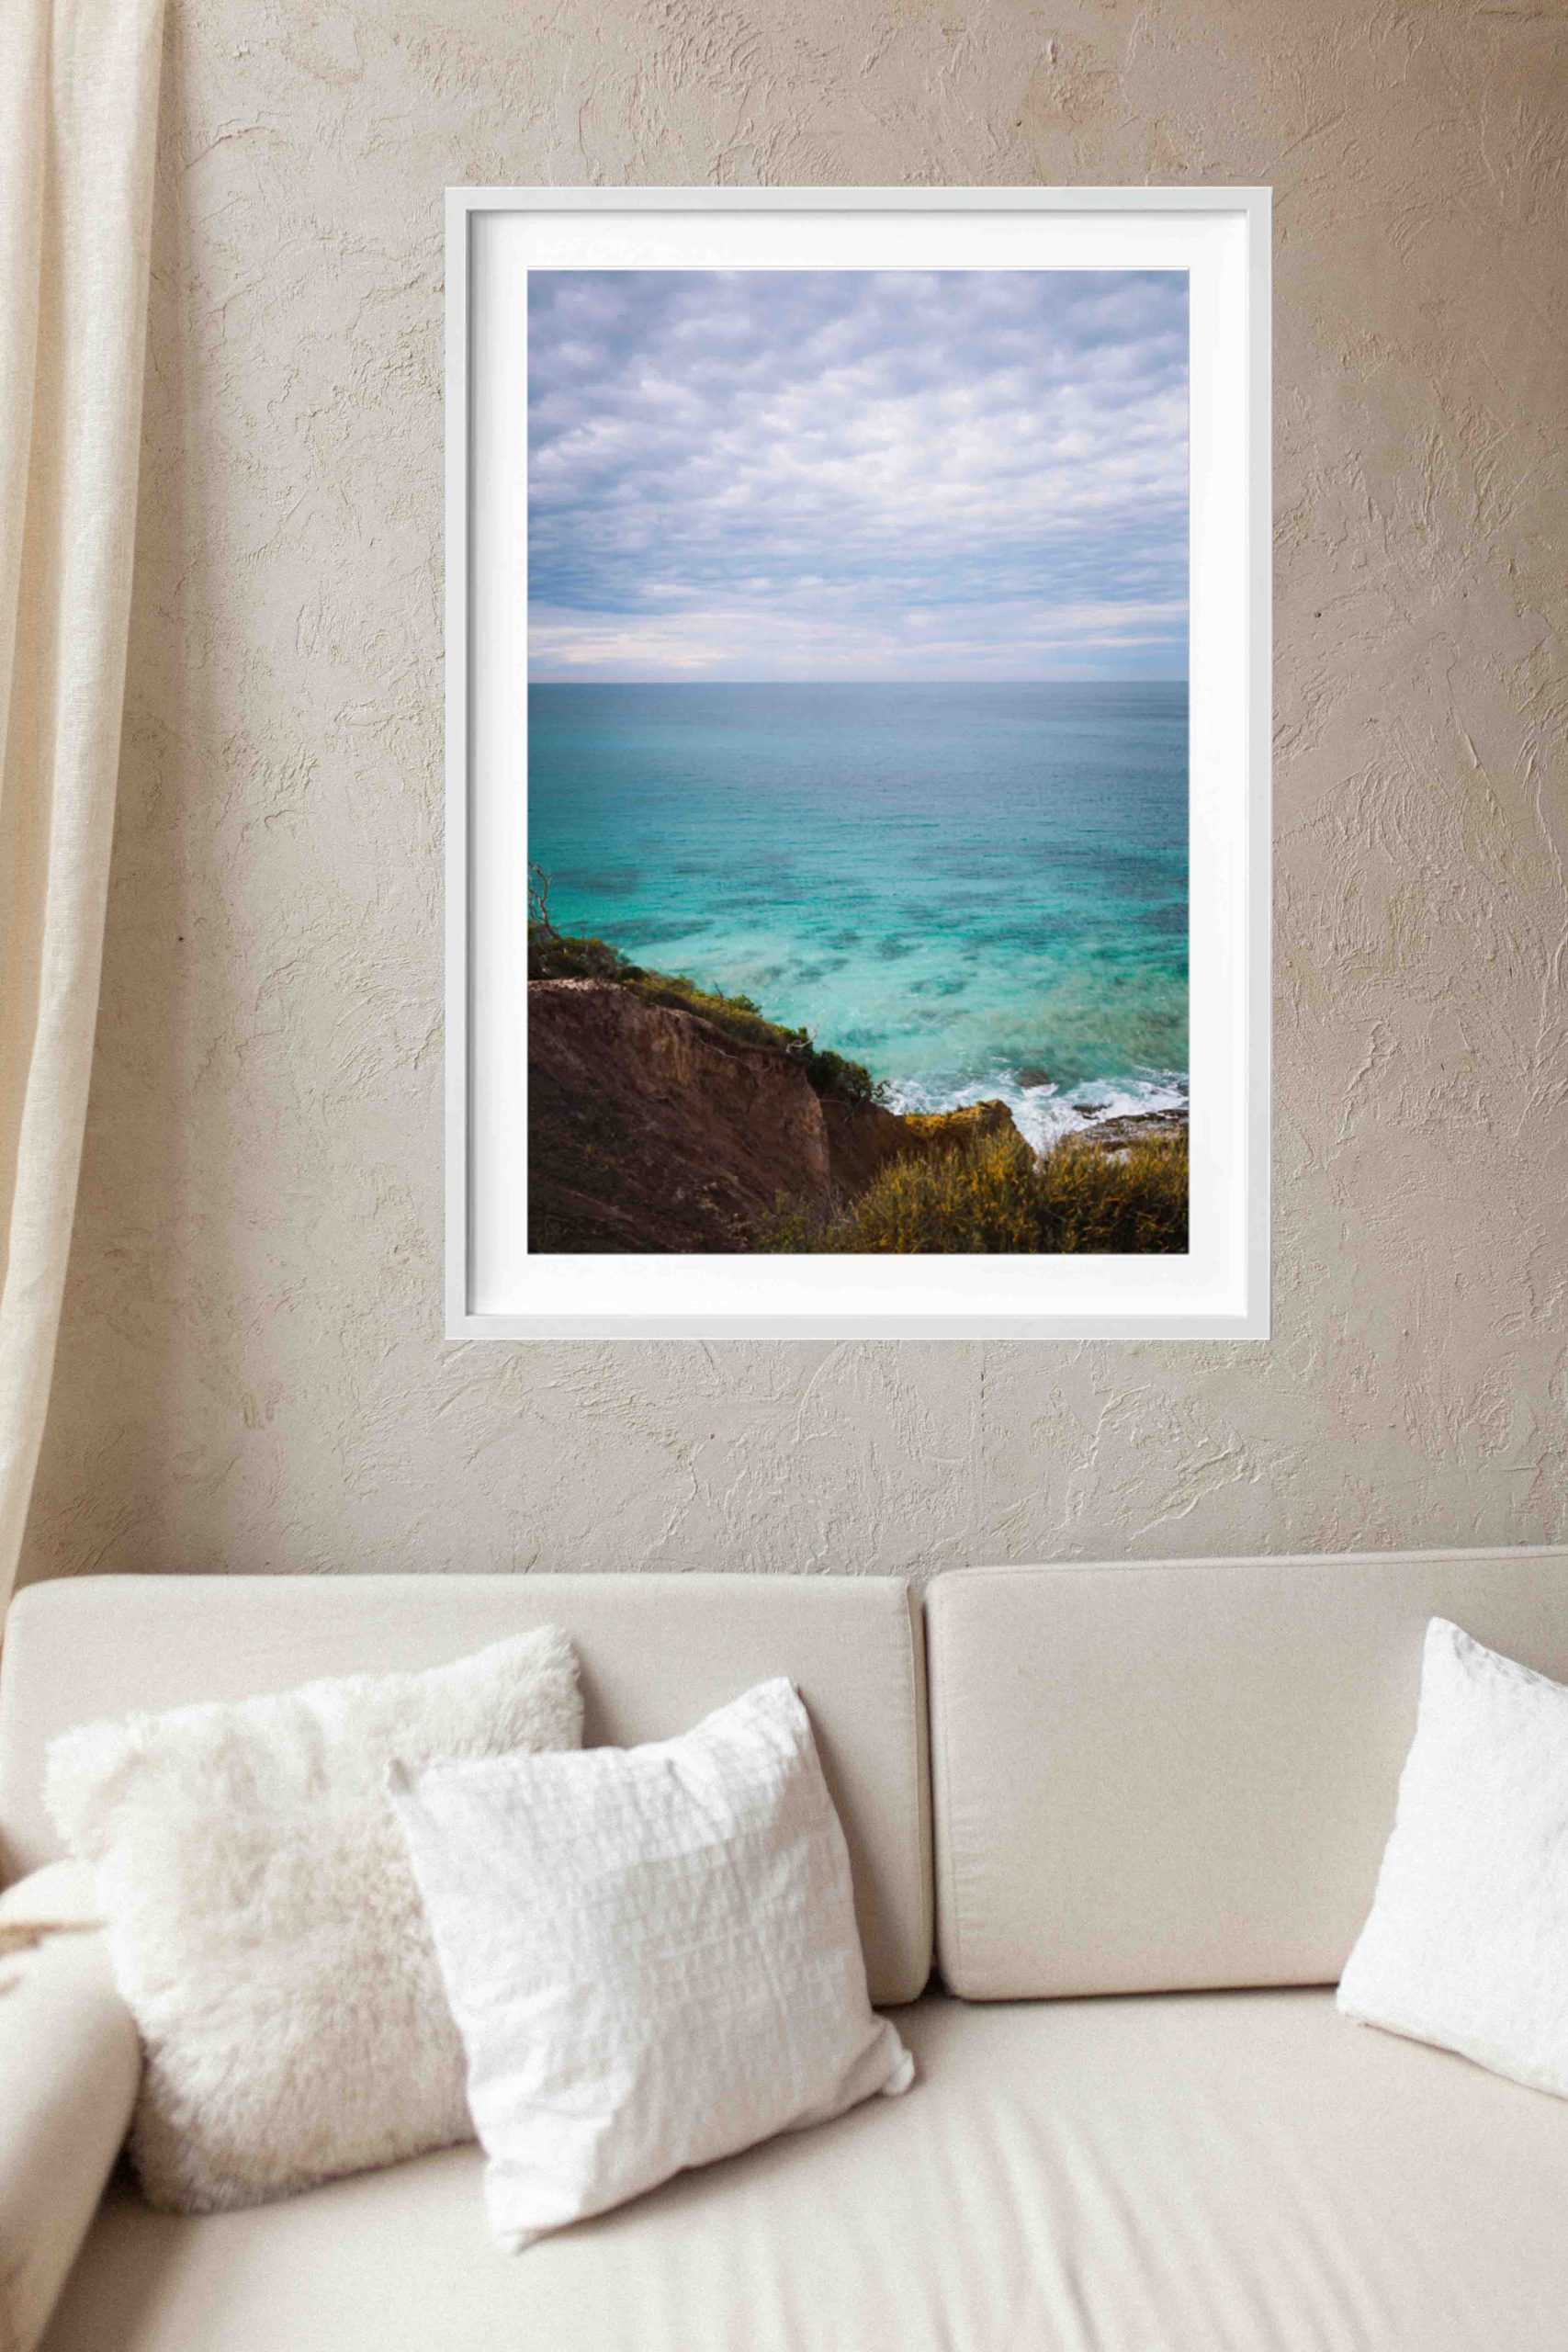 'Orpheus' from the Aireys Inlet Series, Victoria, Australia by Melissa Butters Photography